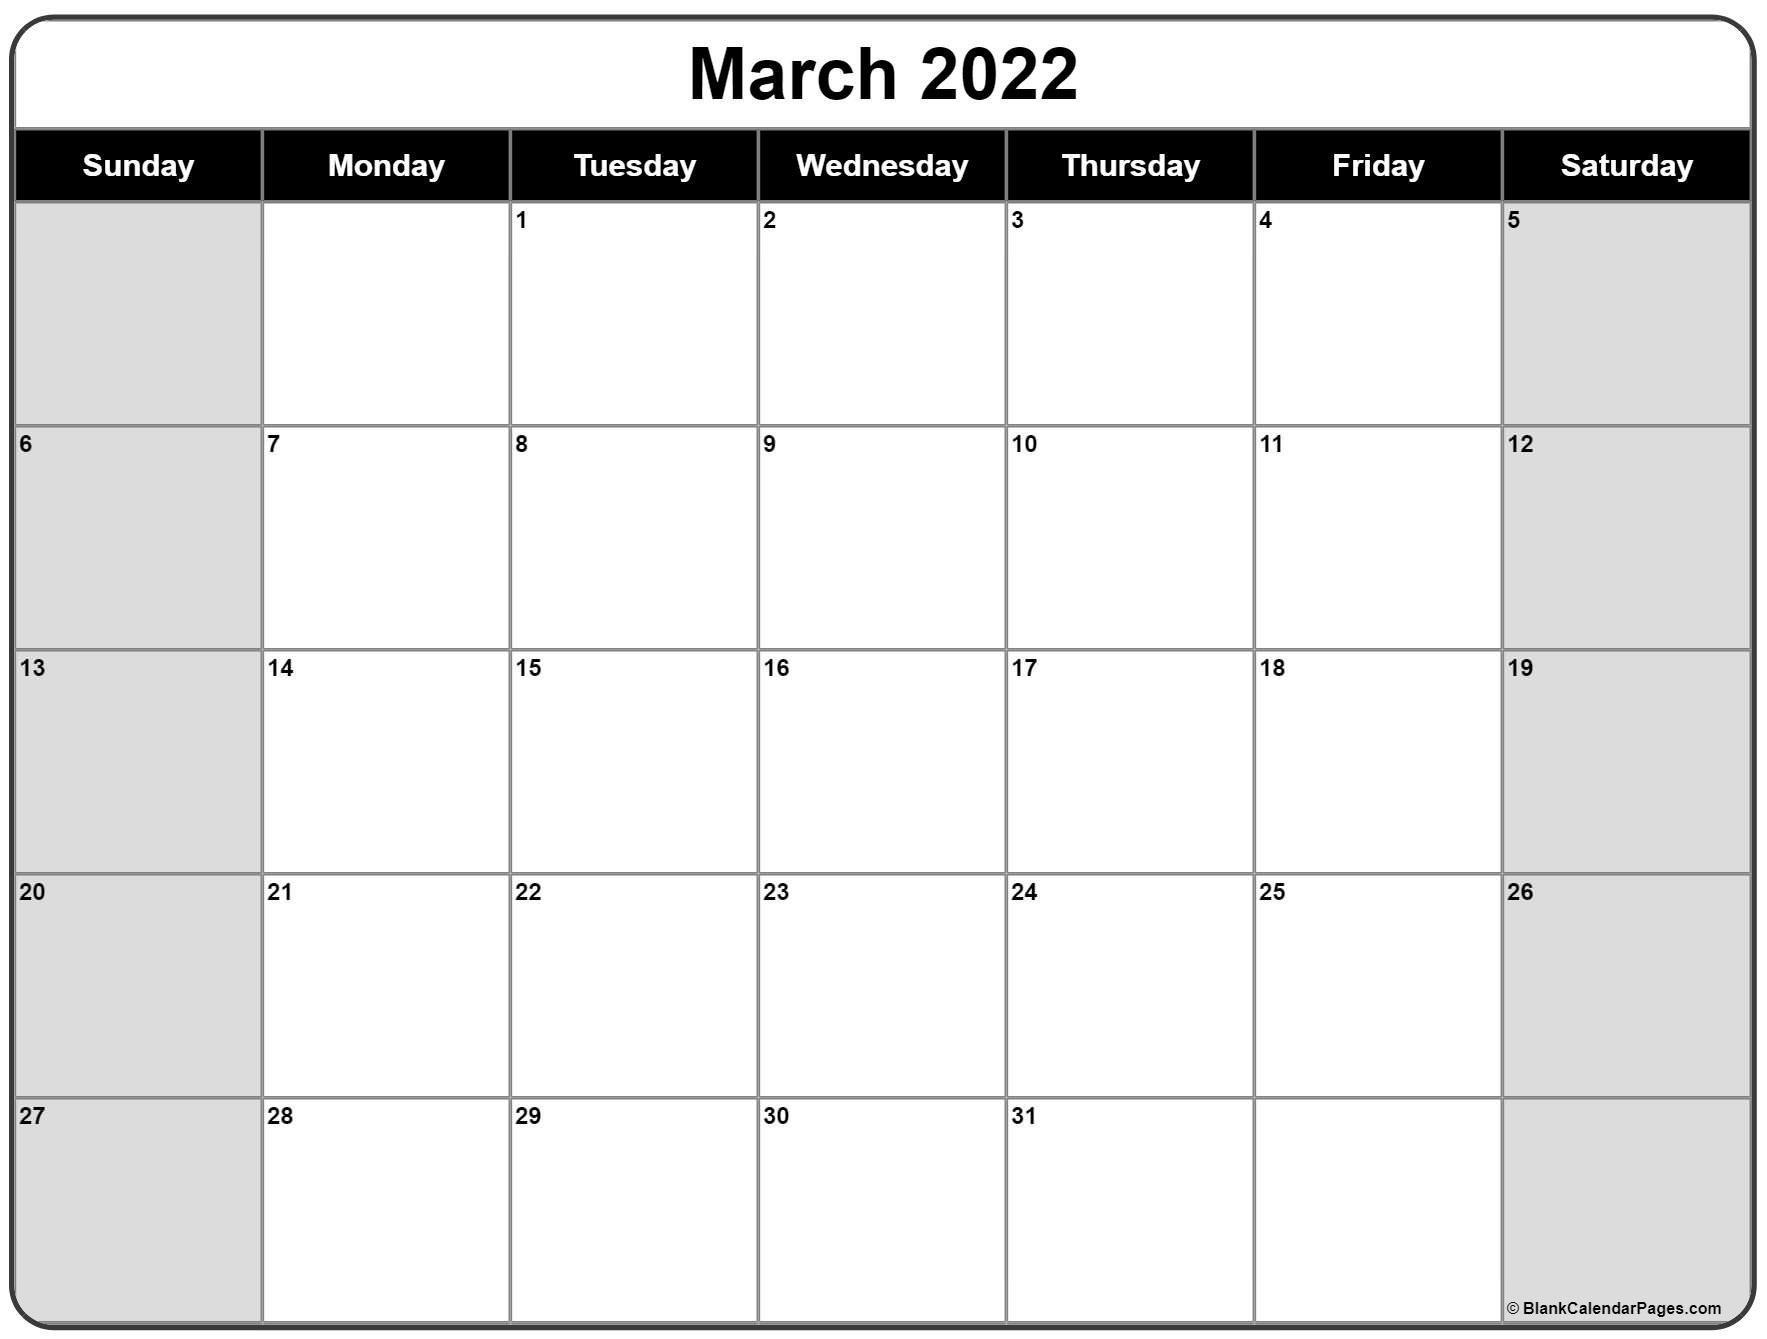 March 2022 Calendar | Free Printable Calendar Templates for Monthly Planner 2022 Printable Graphics